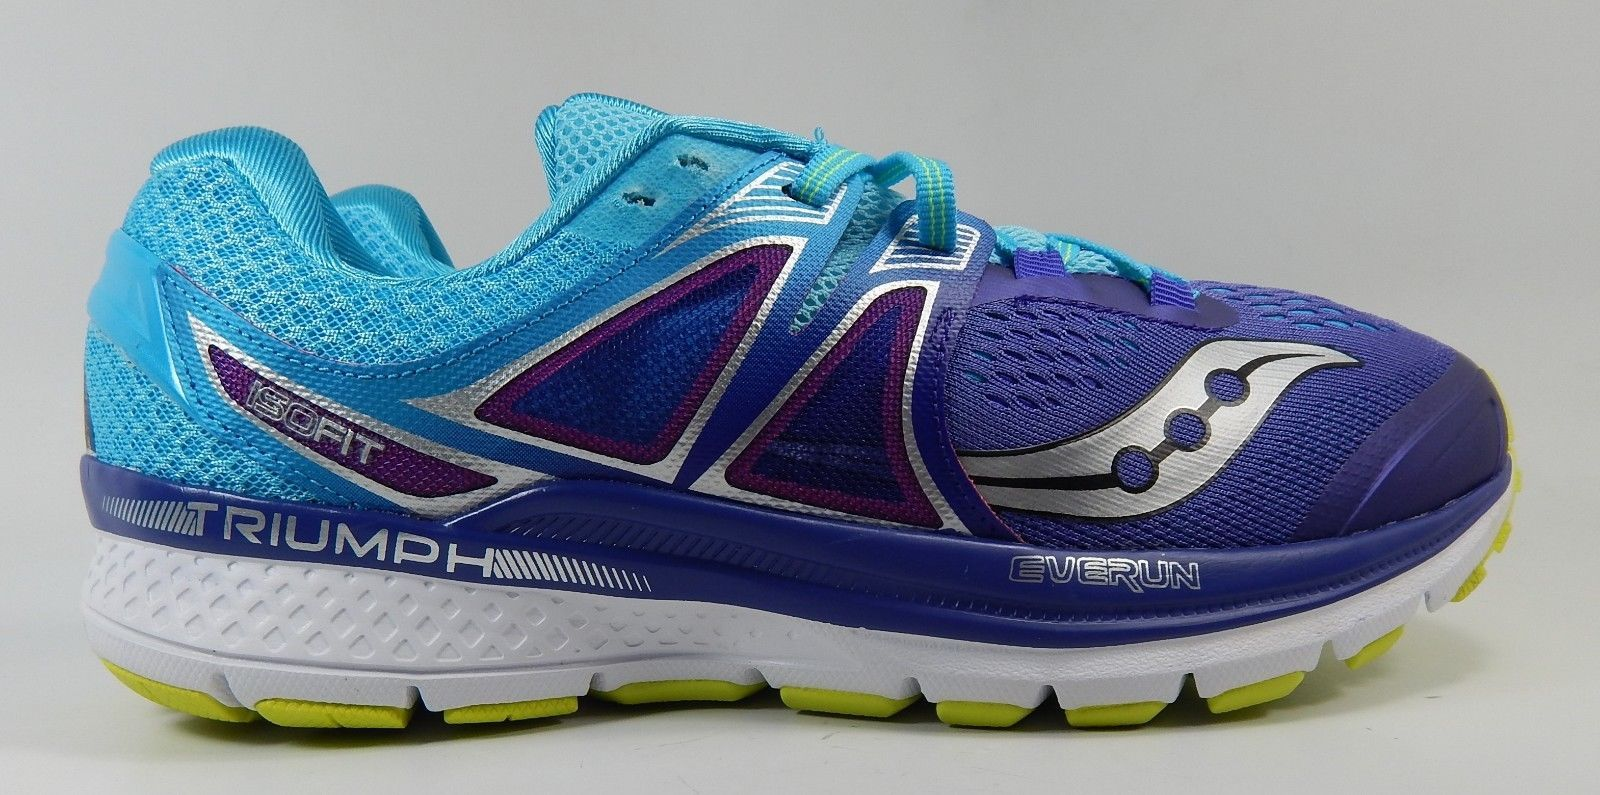 2c36f3bb Saucony Triumph ISO 3 Running Shoes Women's and similar items. S l1600